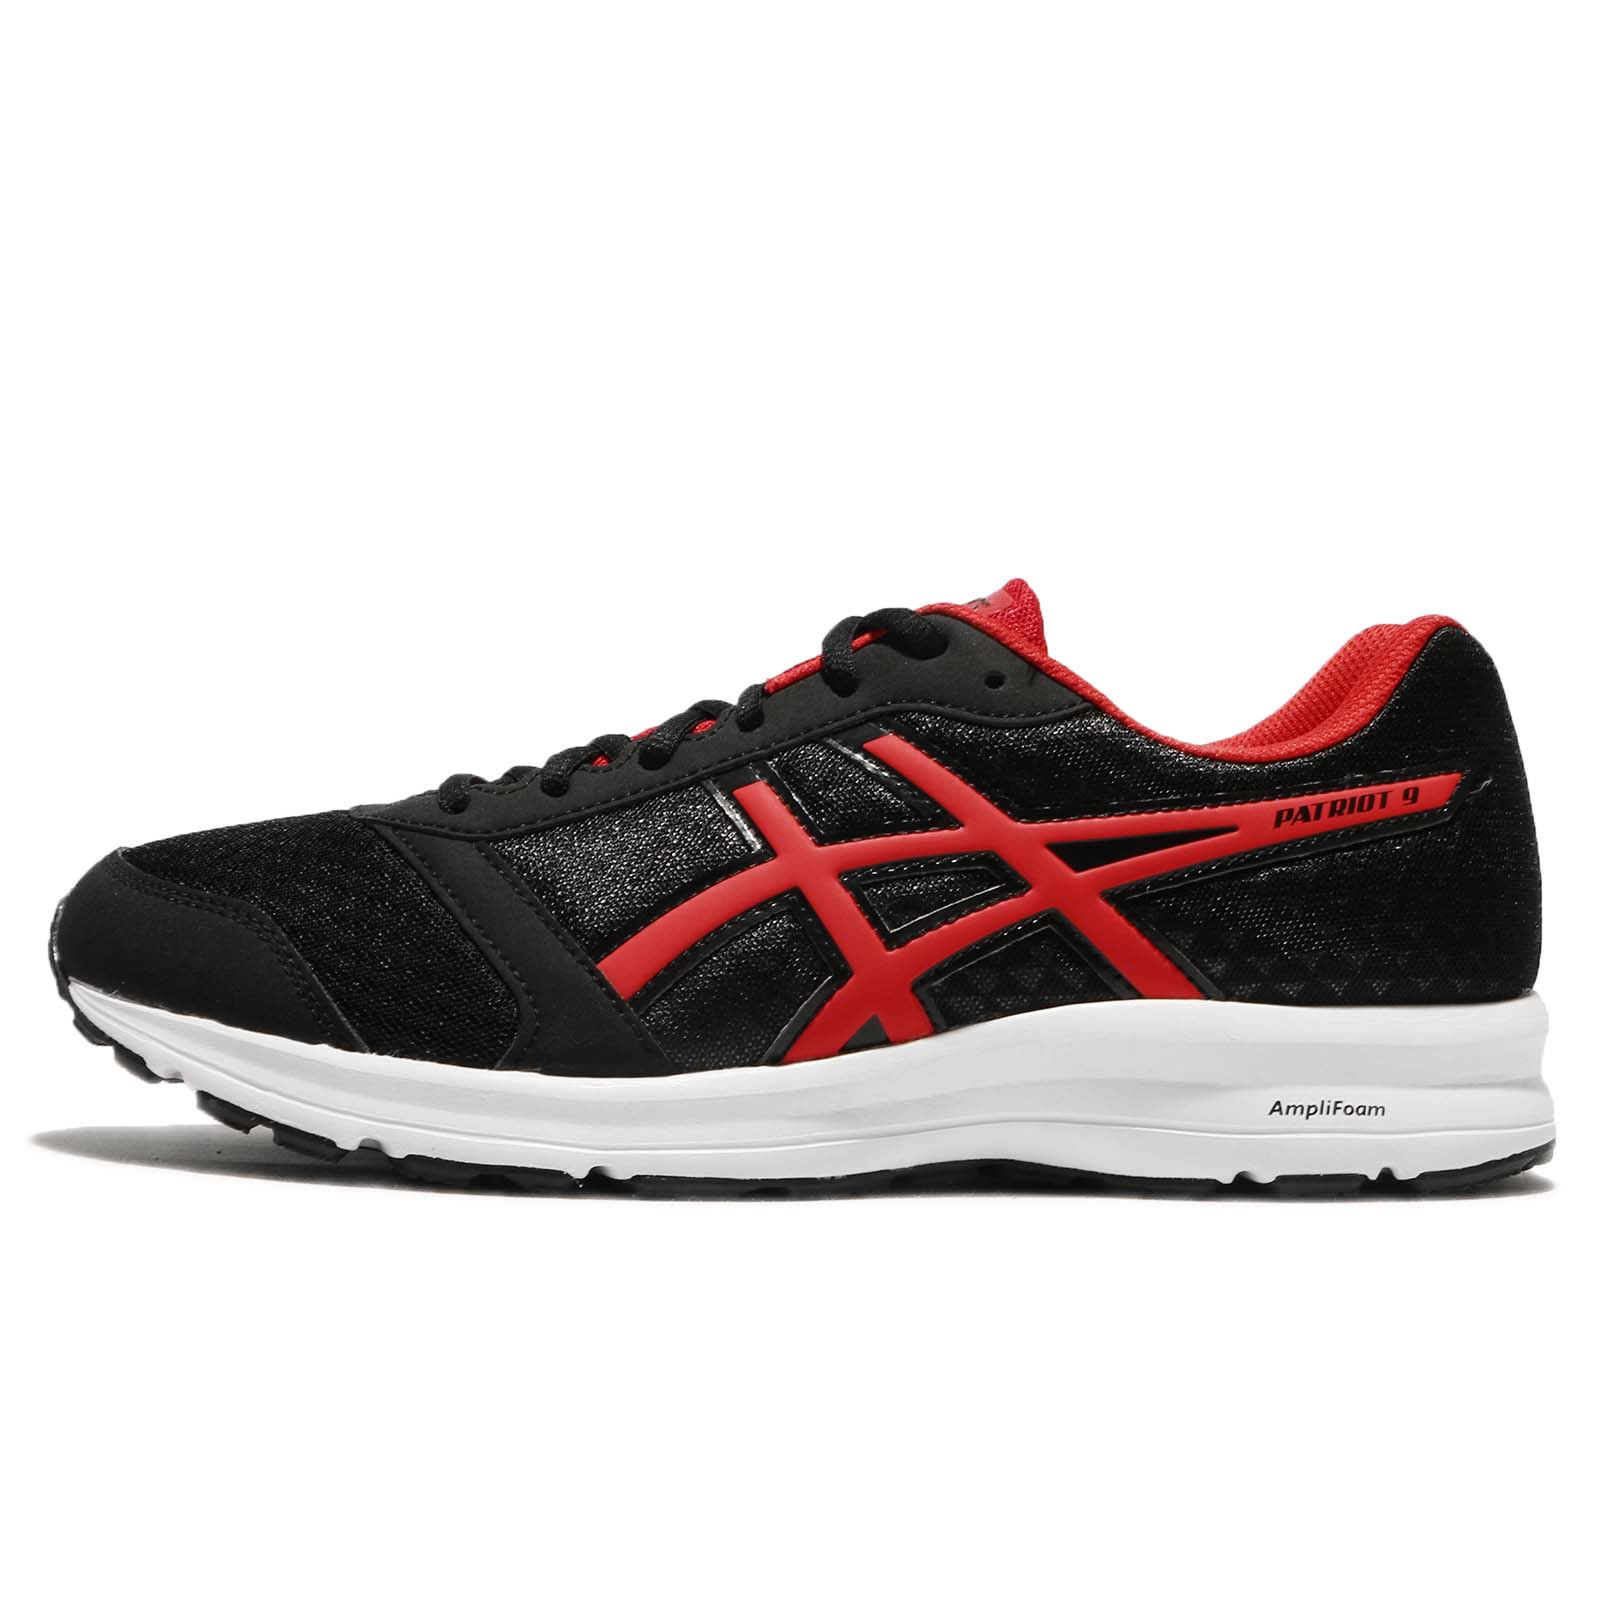 Asics Patriot 9 Black Red White Men Running Athletic Shoes Sneakers T823N 9023